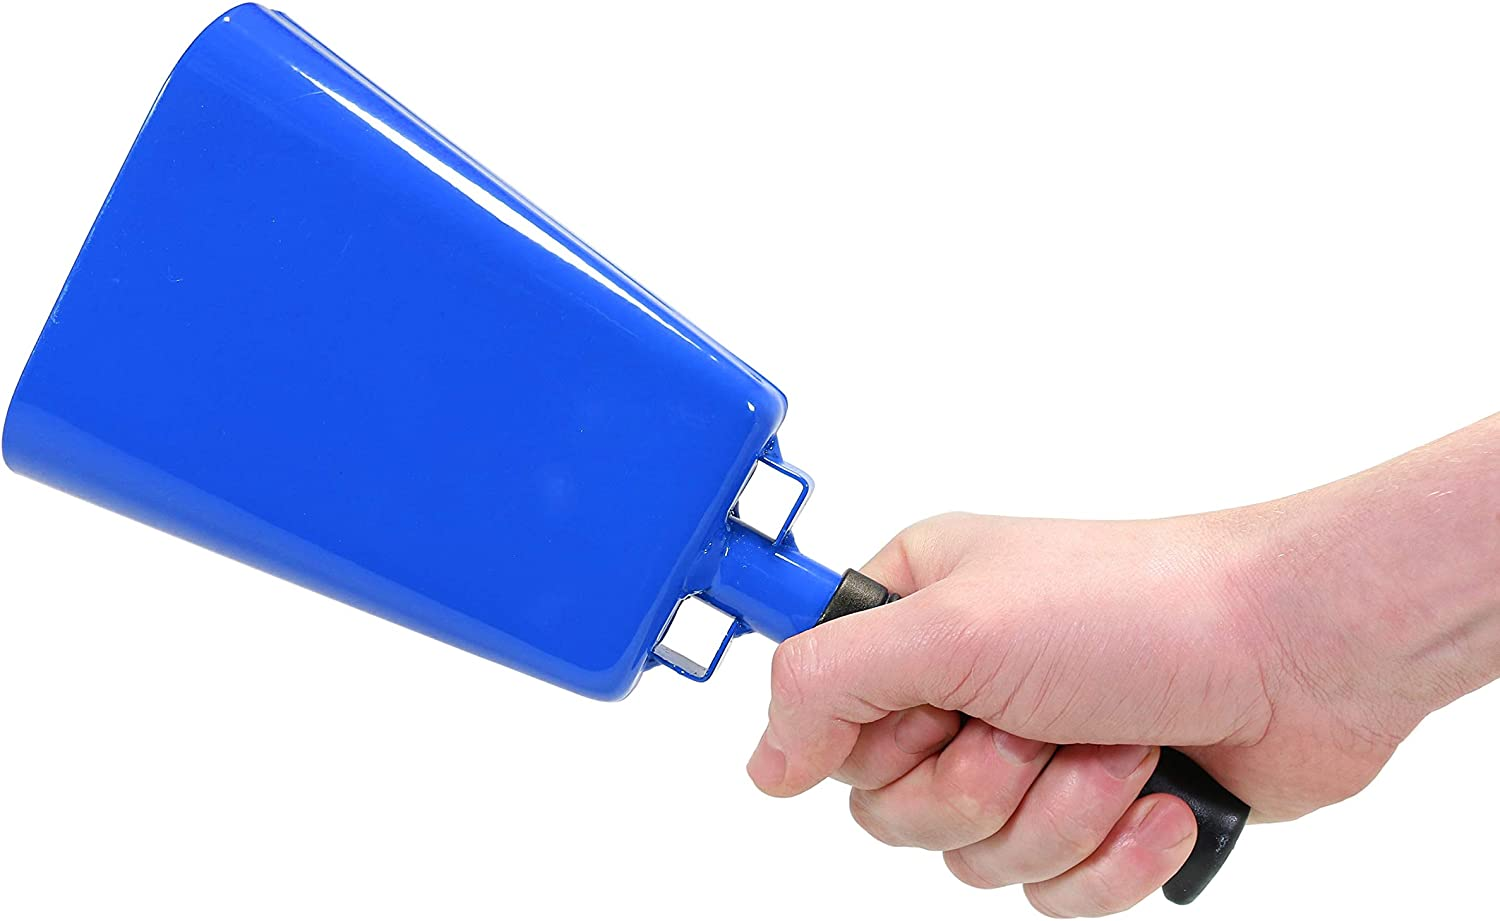 Weddings /& Cheering Complete with a Plastic French Horn Blue 342GC 11 Blue Cowbell Noisemaker With Plastic Handle and Zinc Alloy Clapper for Sporting Events